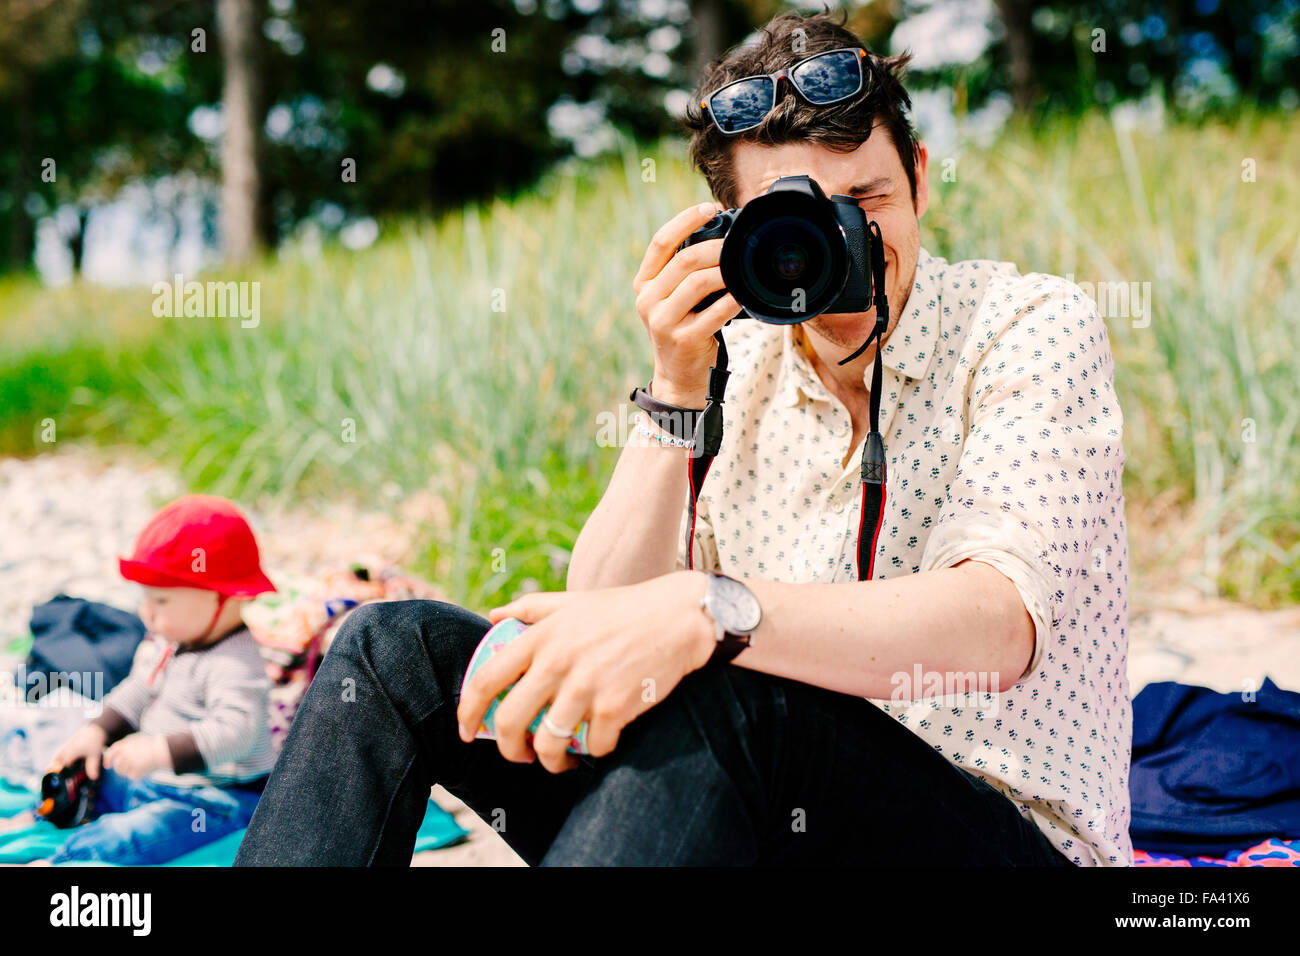 Man photographing using SLR camera - Stock Image